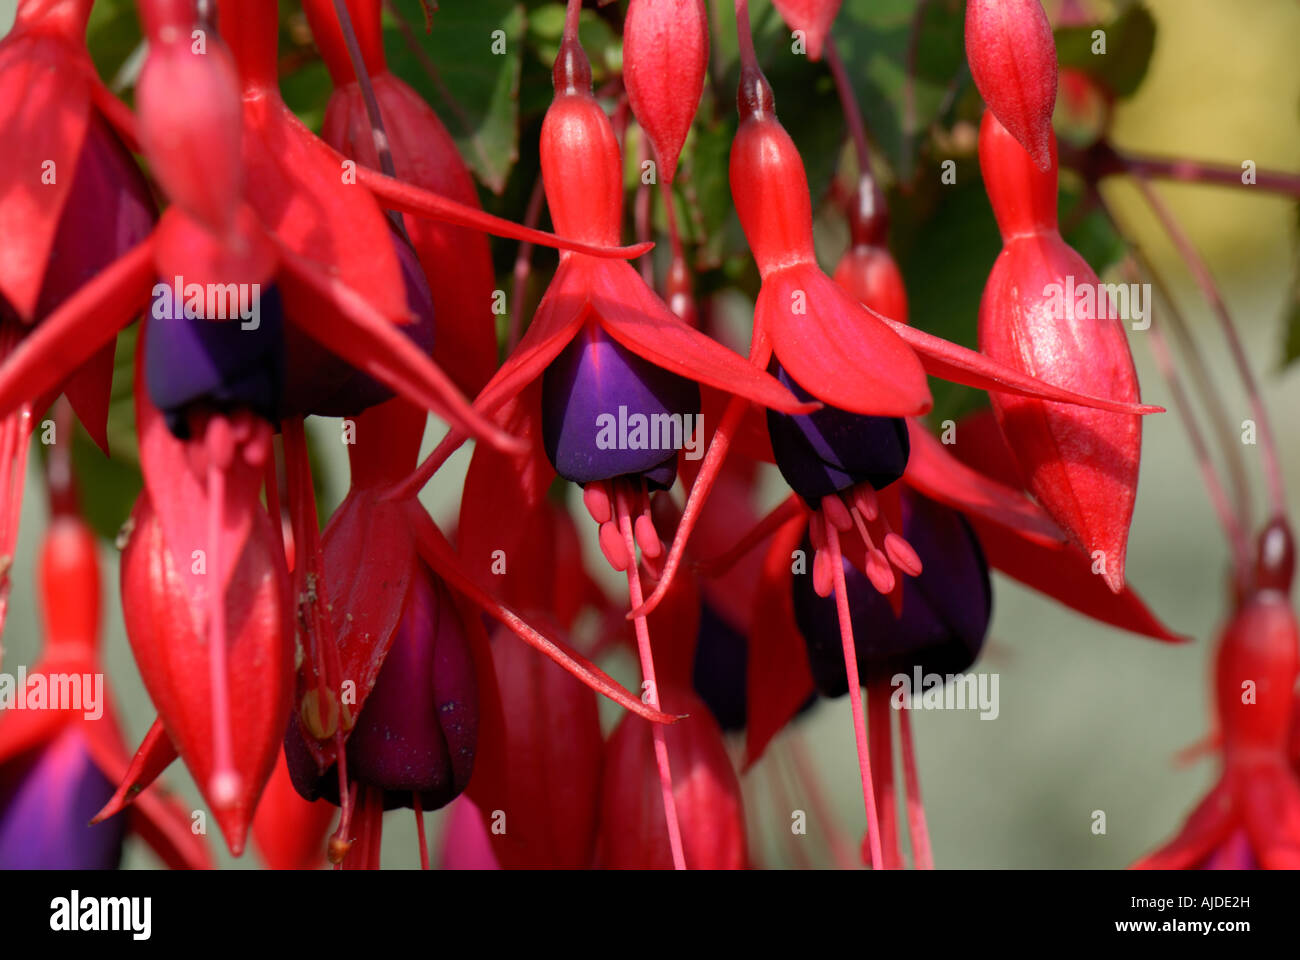 Intense red and purple flowers of a single flowered hardy garden Fuchsia - Stock Image